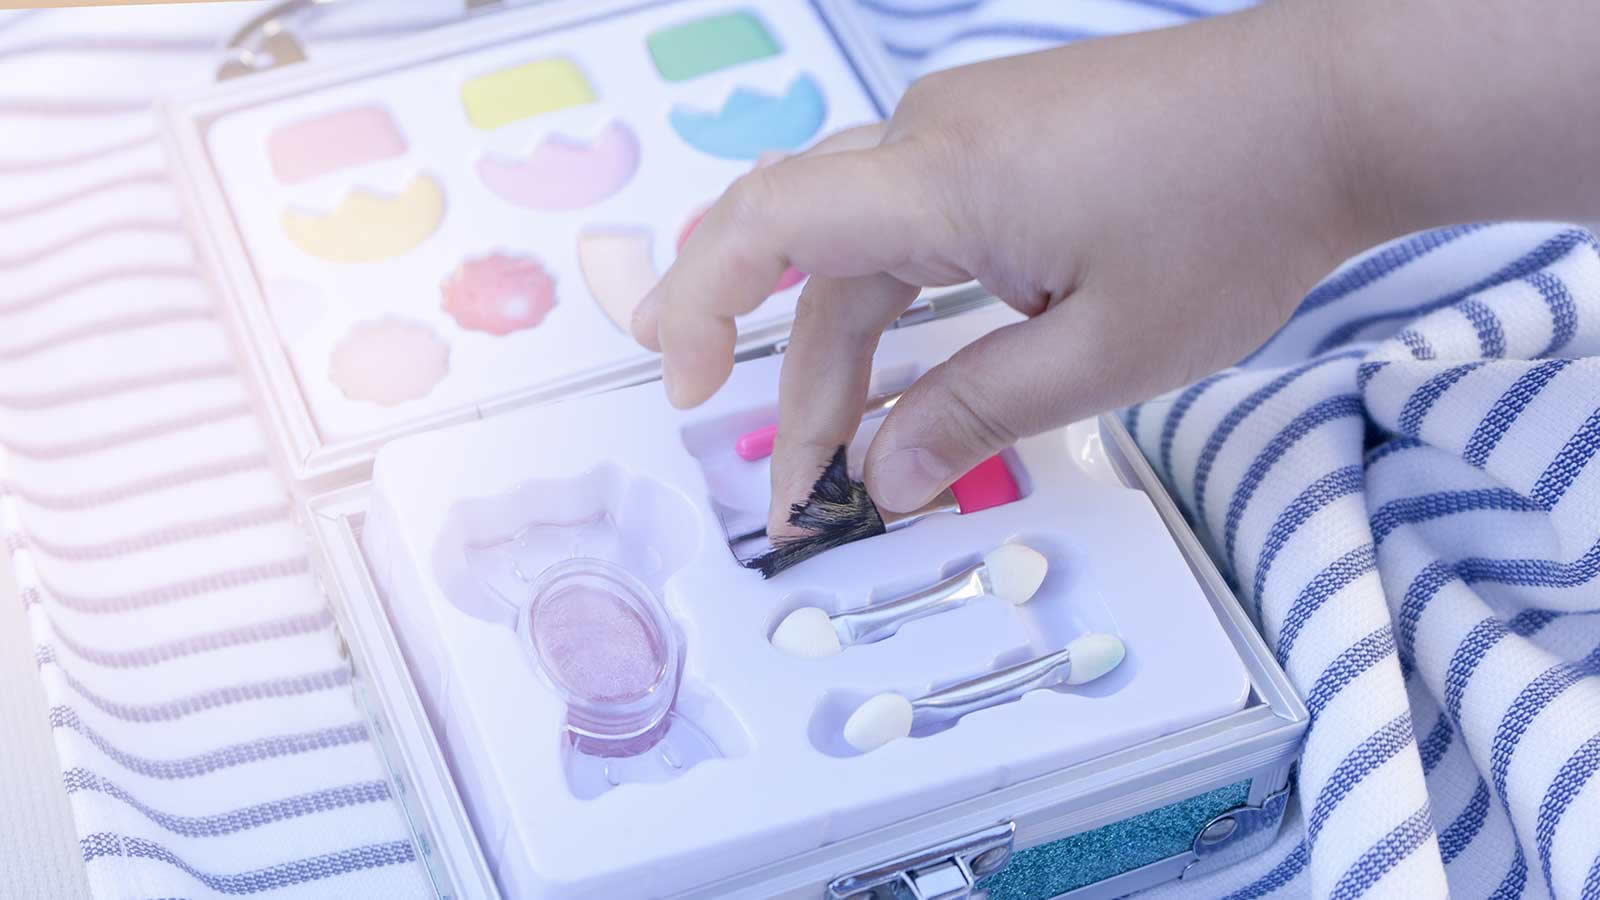 <h4>Asbestos In Kids' Makeup</h4><p>Recently the PIRG Consumer Watchdog team found asbestos in some of the makeup sold by Claire's, which is marketed to kids and pre-teens. Inhaling or ingesting any form of asbestos can lead to serious health conditions, including lung cancer and mesothelioma.</p><em>sirtravelalot via Shutterstock</em>